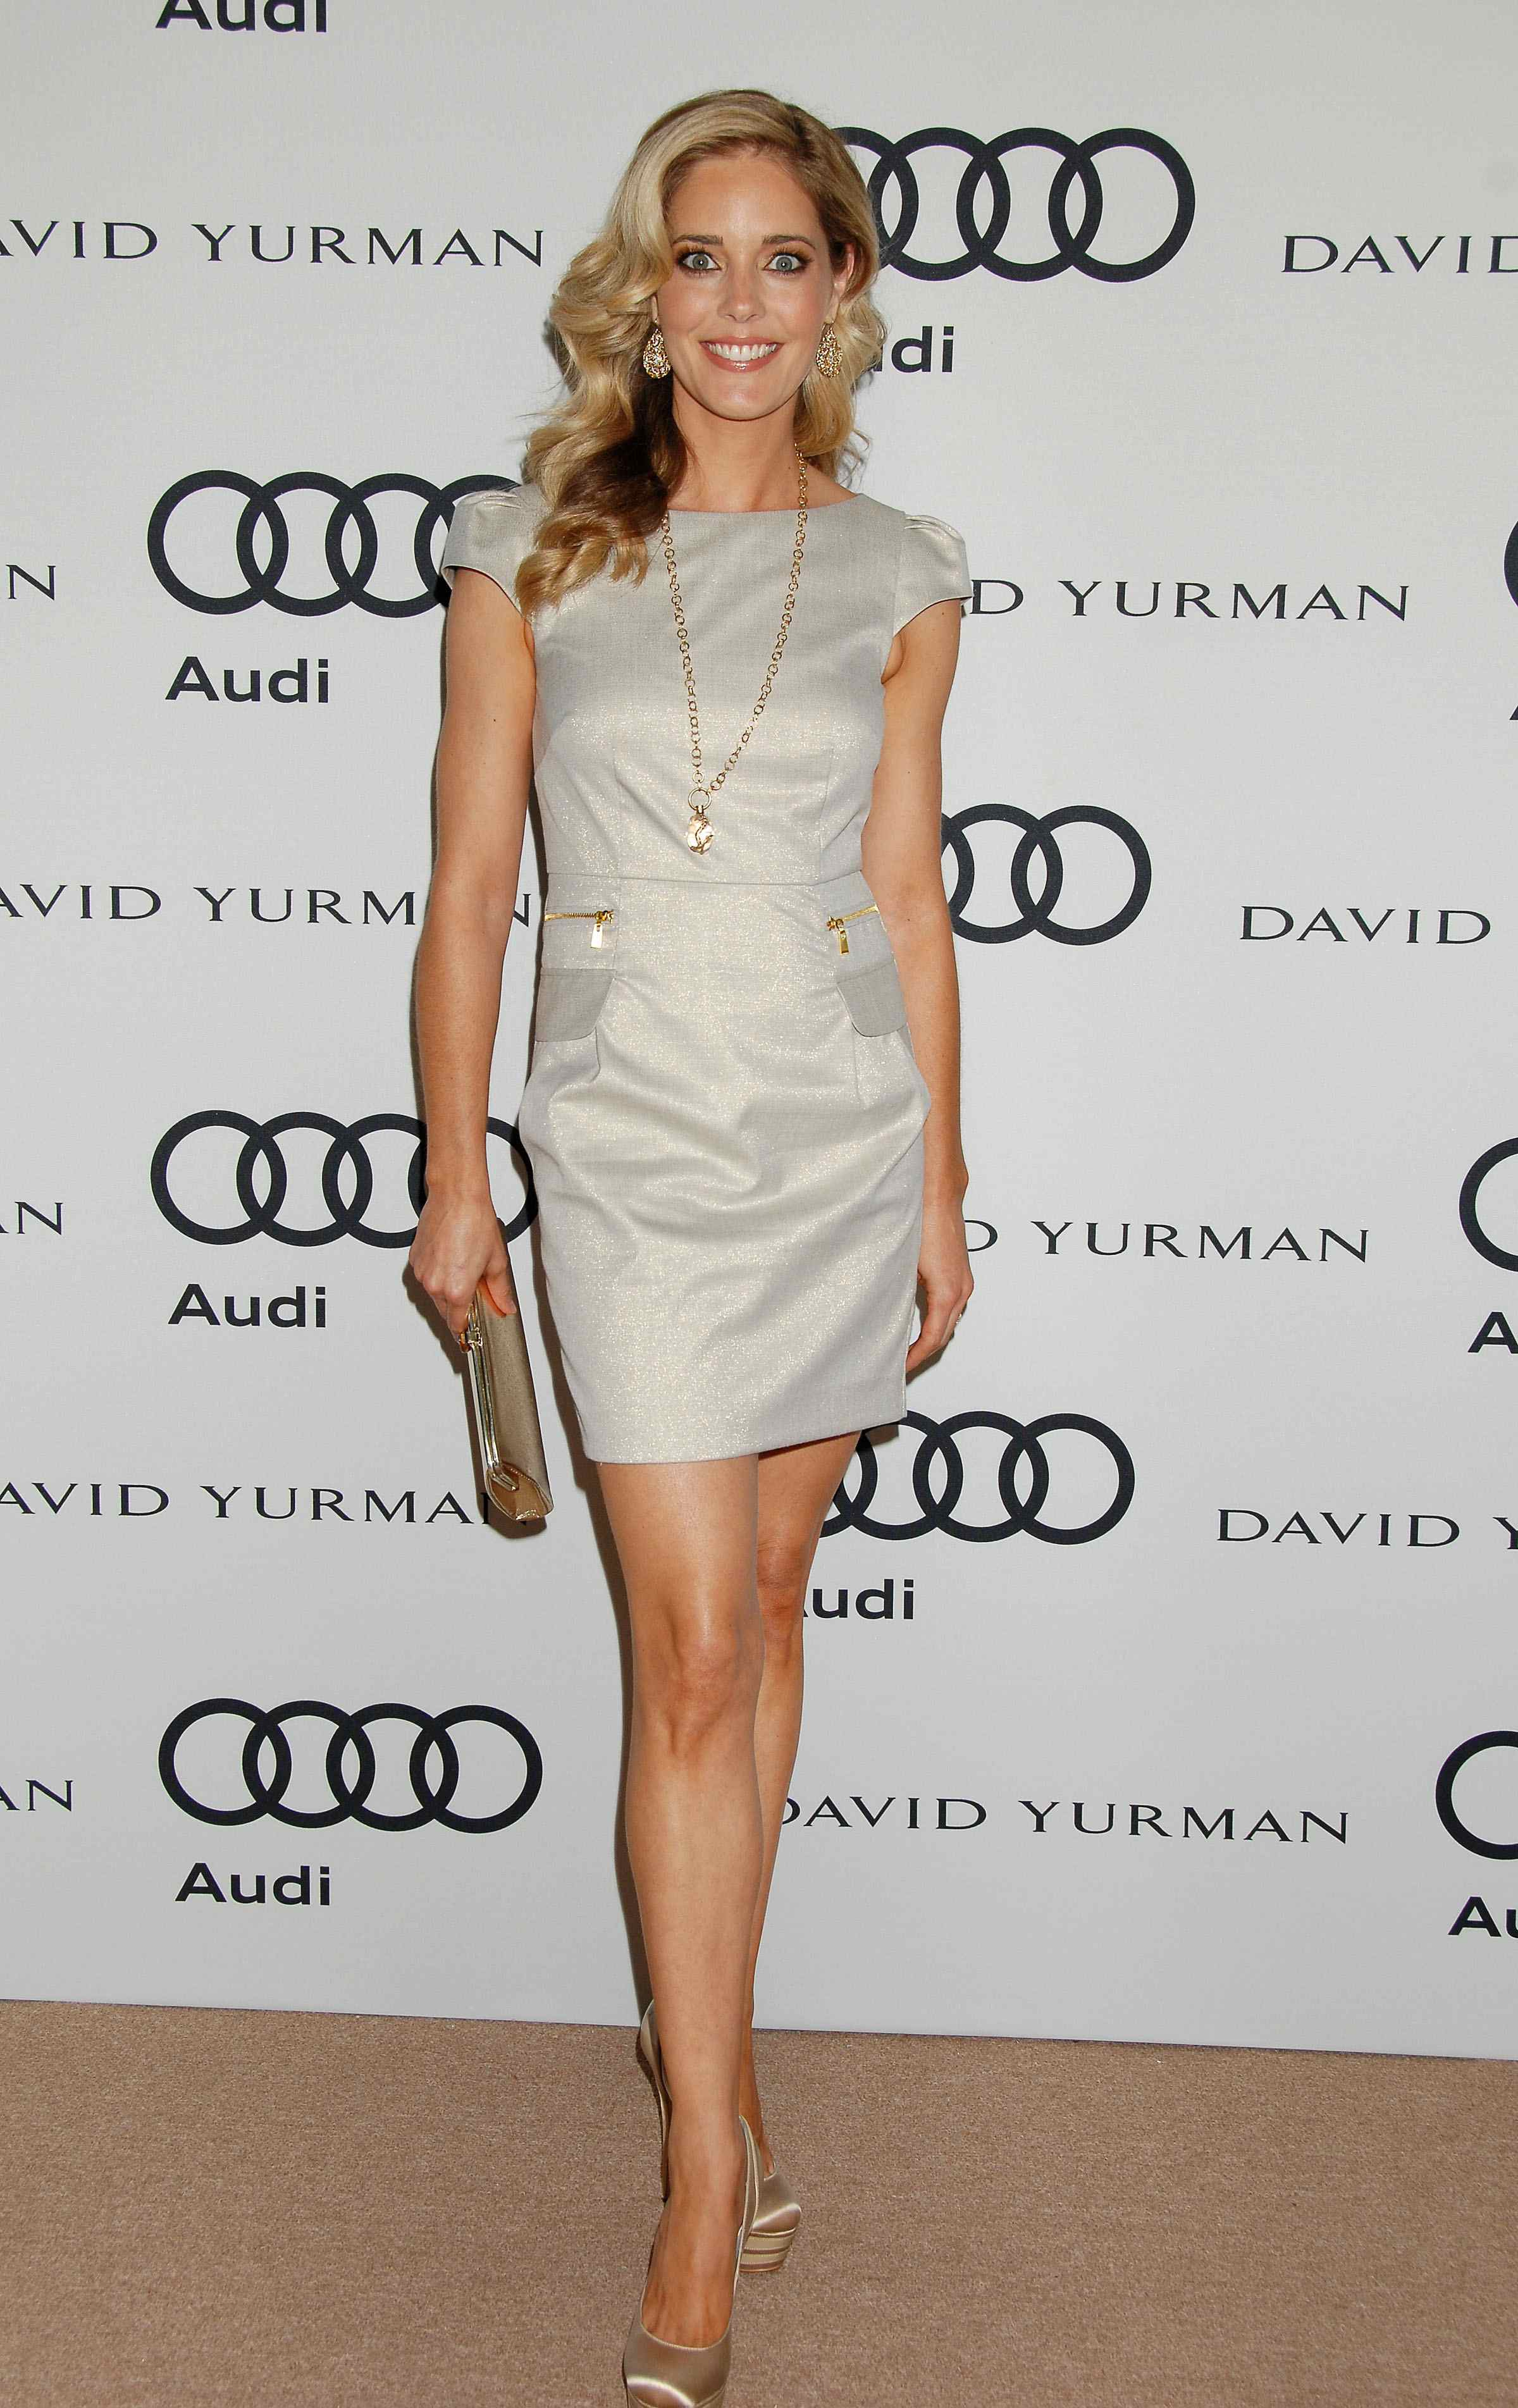 christina moore facebookchristina moore height, christina moore, christina moore facebook, christina moore imdb, christina moore wikipedia, christina moore instagram, christina moore hot, christina moore net worth, christina moore movies and tv shows, christina moore laurie forman, christina moore realtor, christina moore nudography